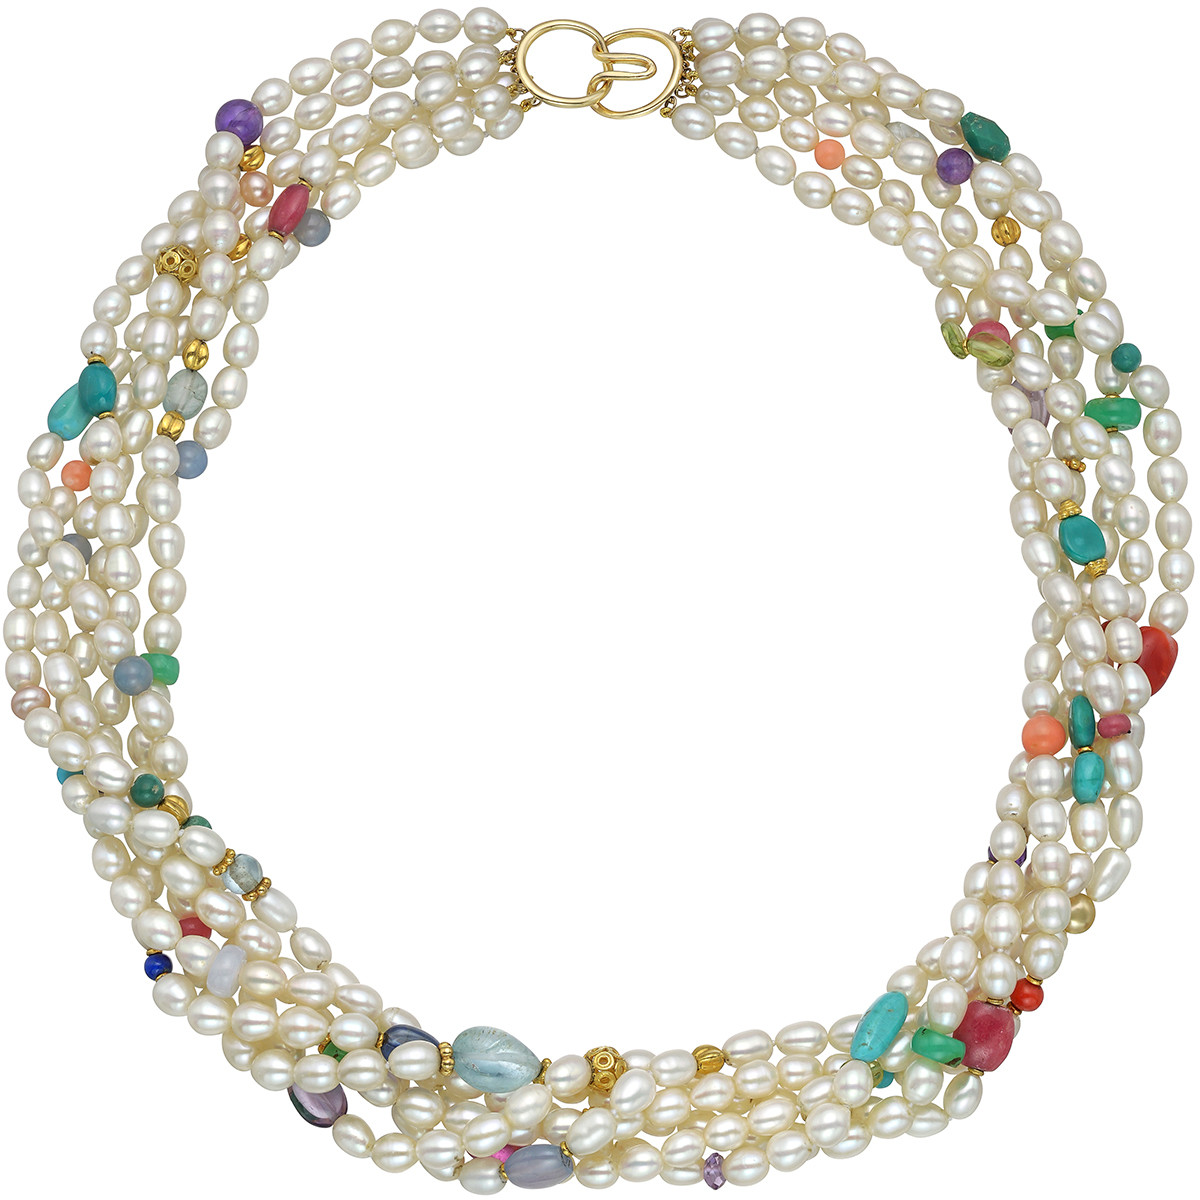 6-Strand Pearl & Gemstone Bead Torsade Necklace